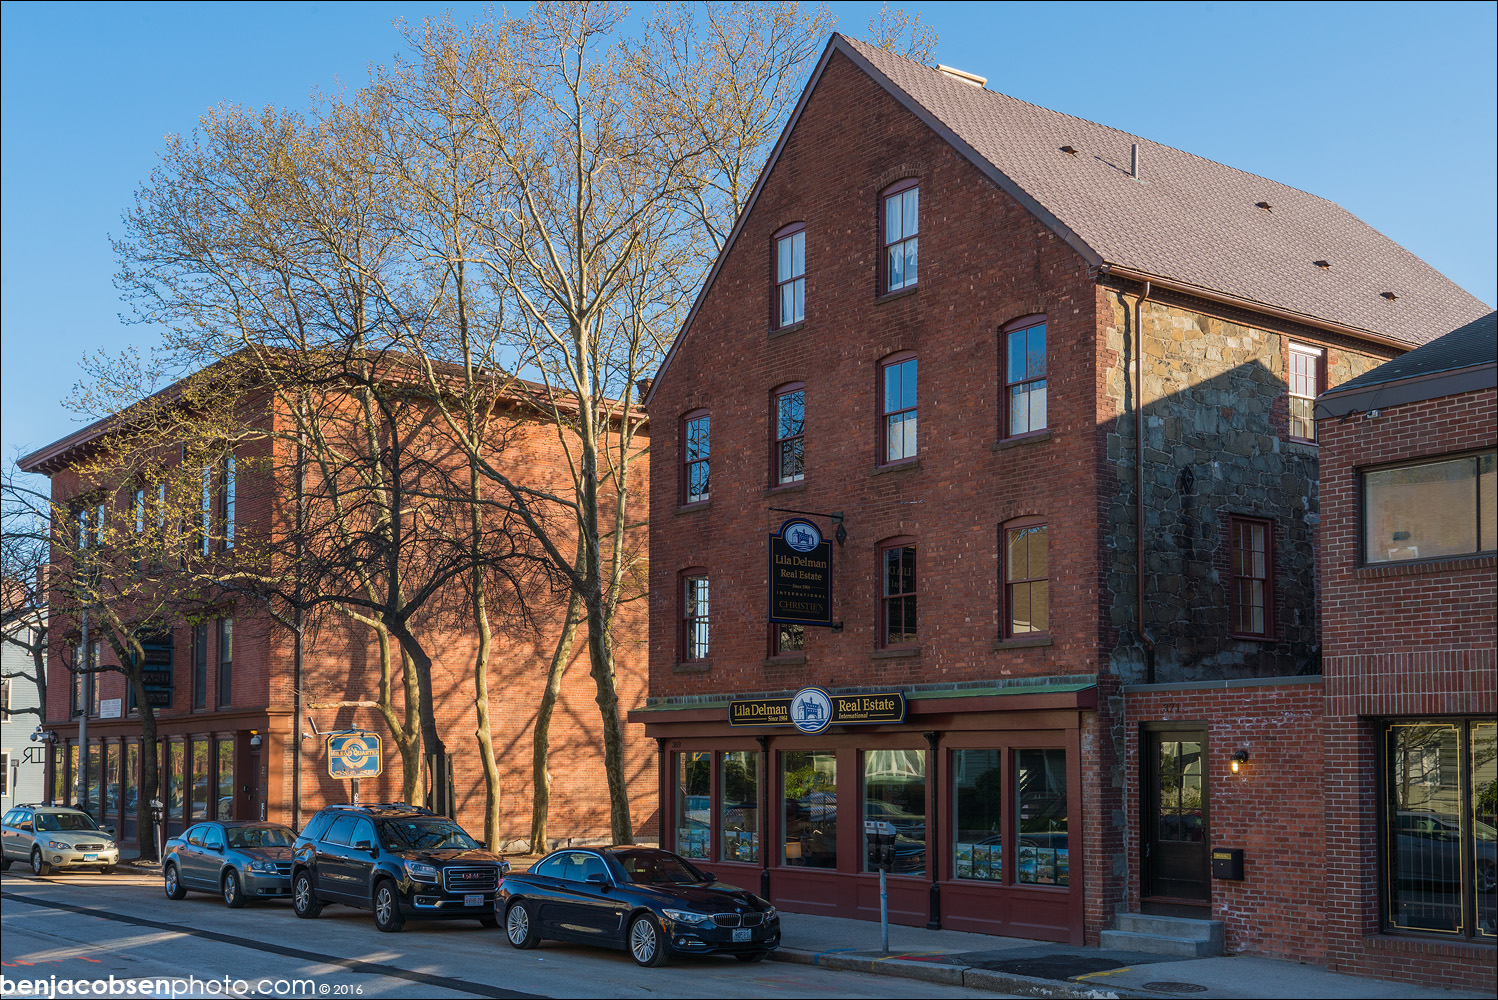 Lila Delman Real Estate Office Earns AIA RI Merit Award for Historic Preservation